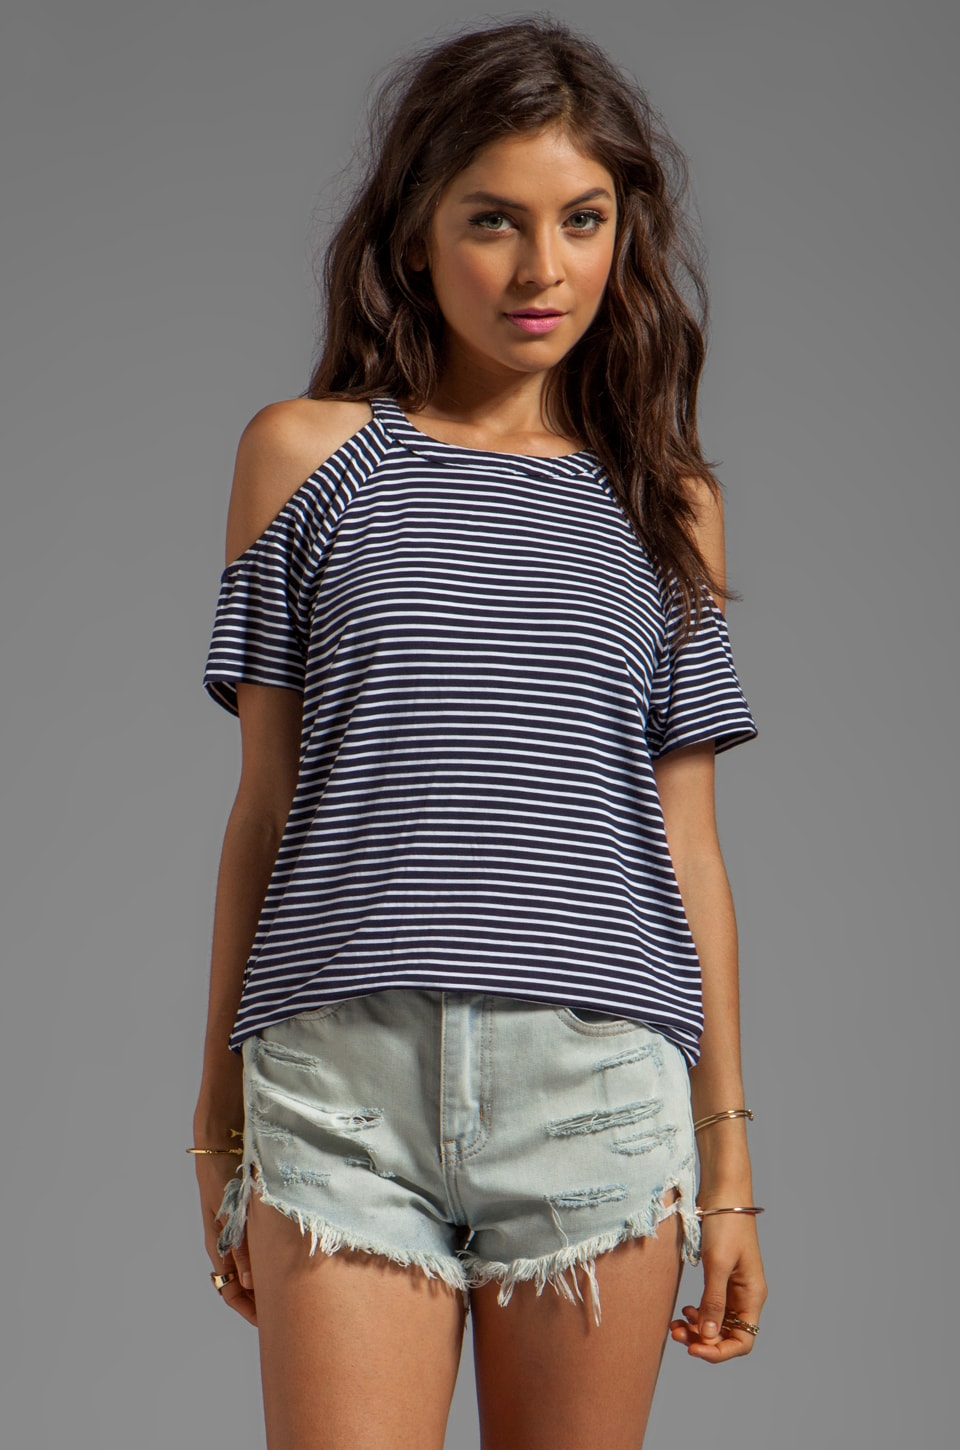 MINKPINK Hello Sailor Tee in Navy/Cream